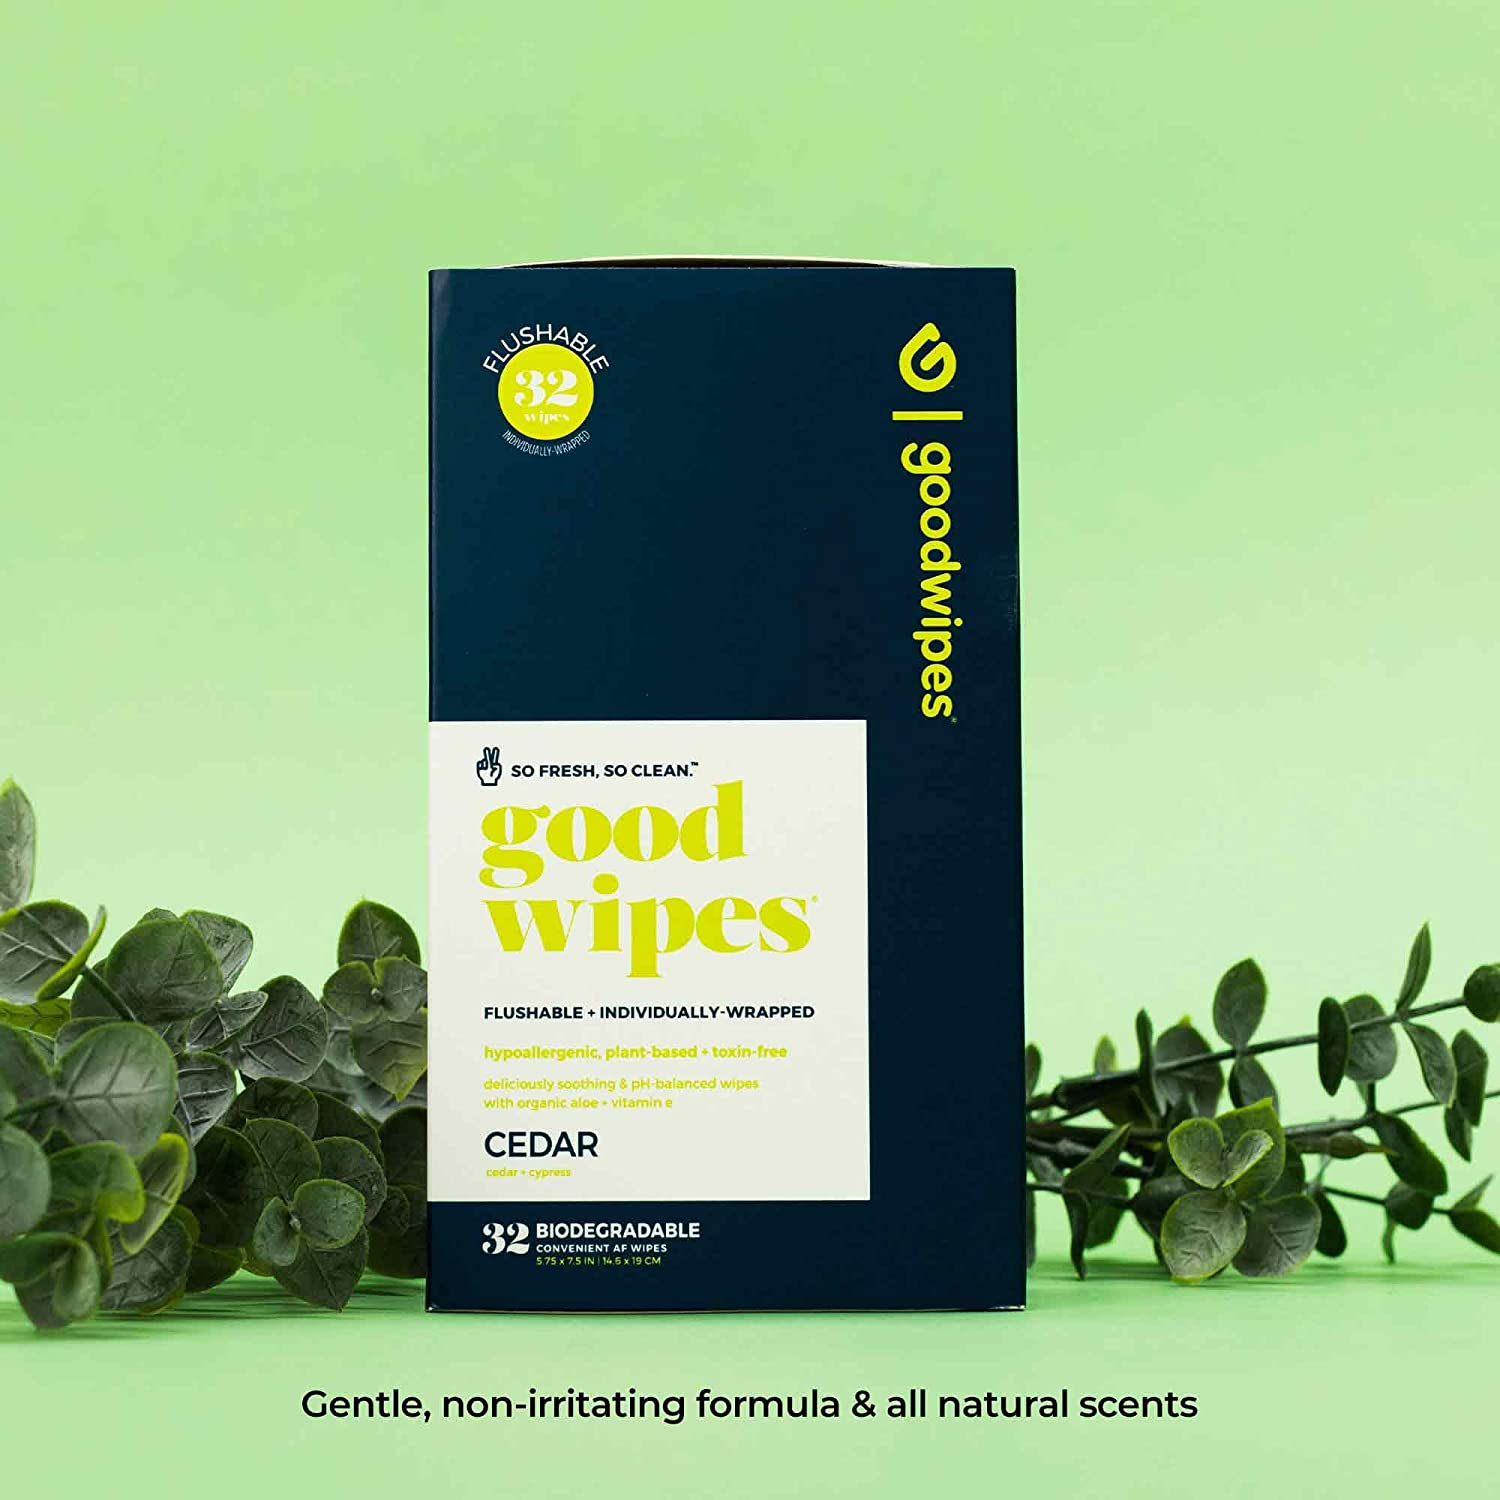 30 Count goodwipes Guys Below The Belt Wipes Flushable Individually Wrapped